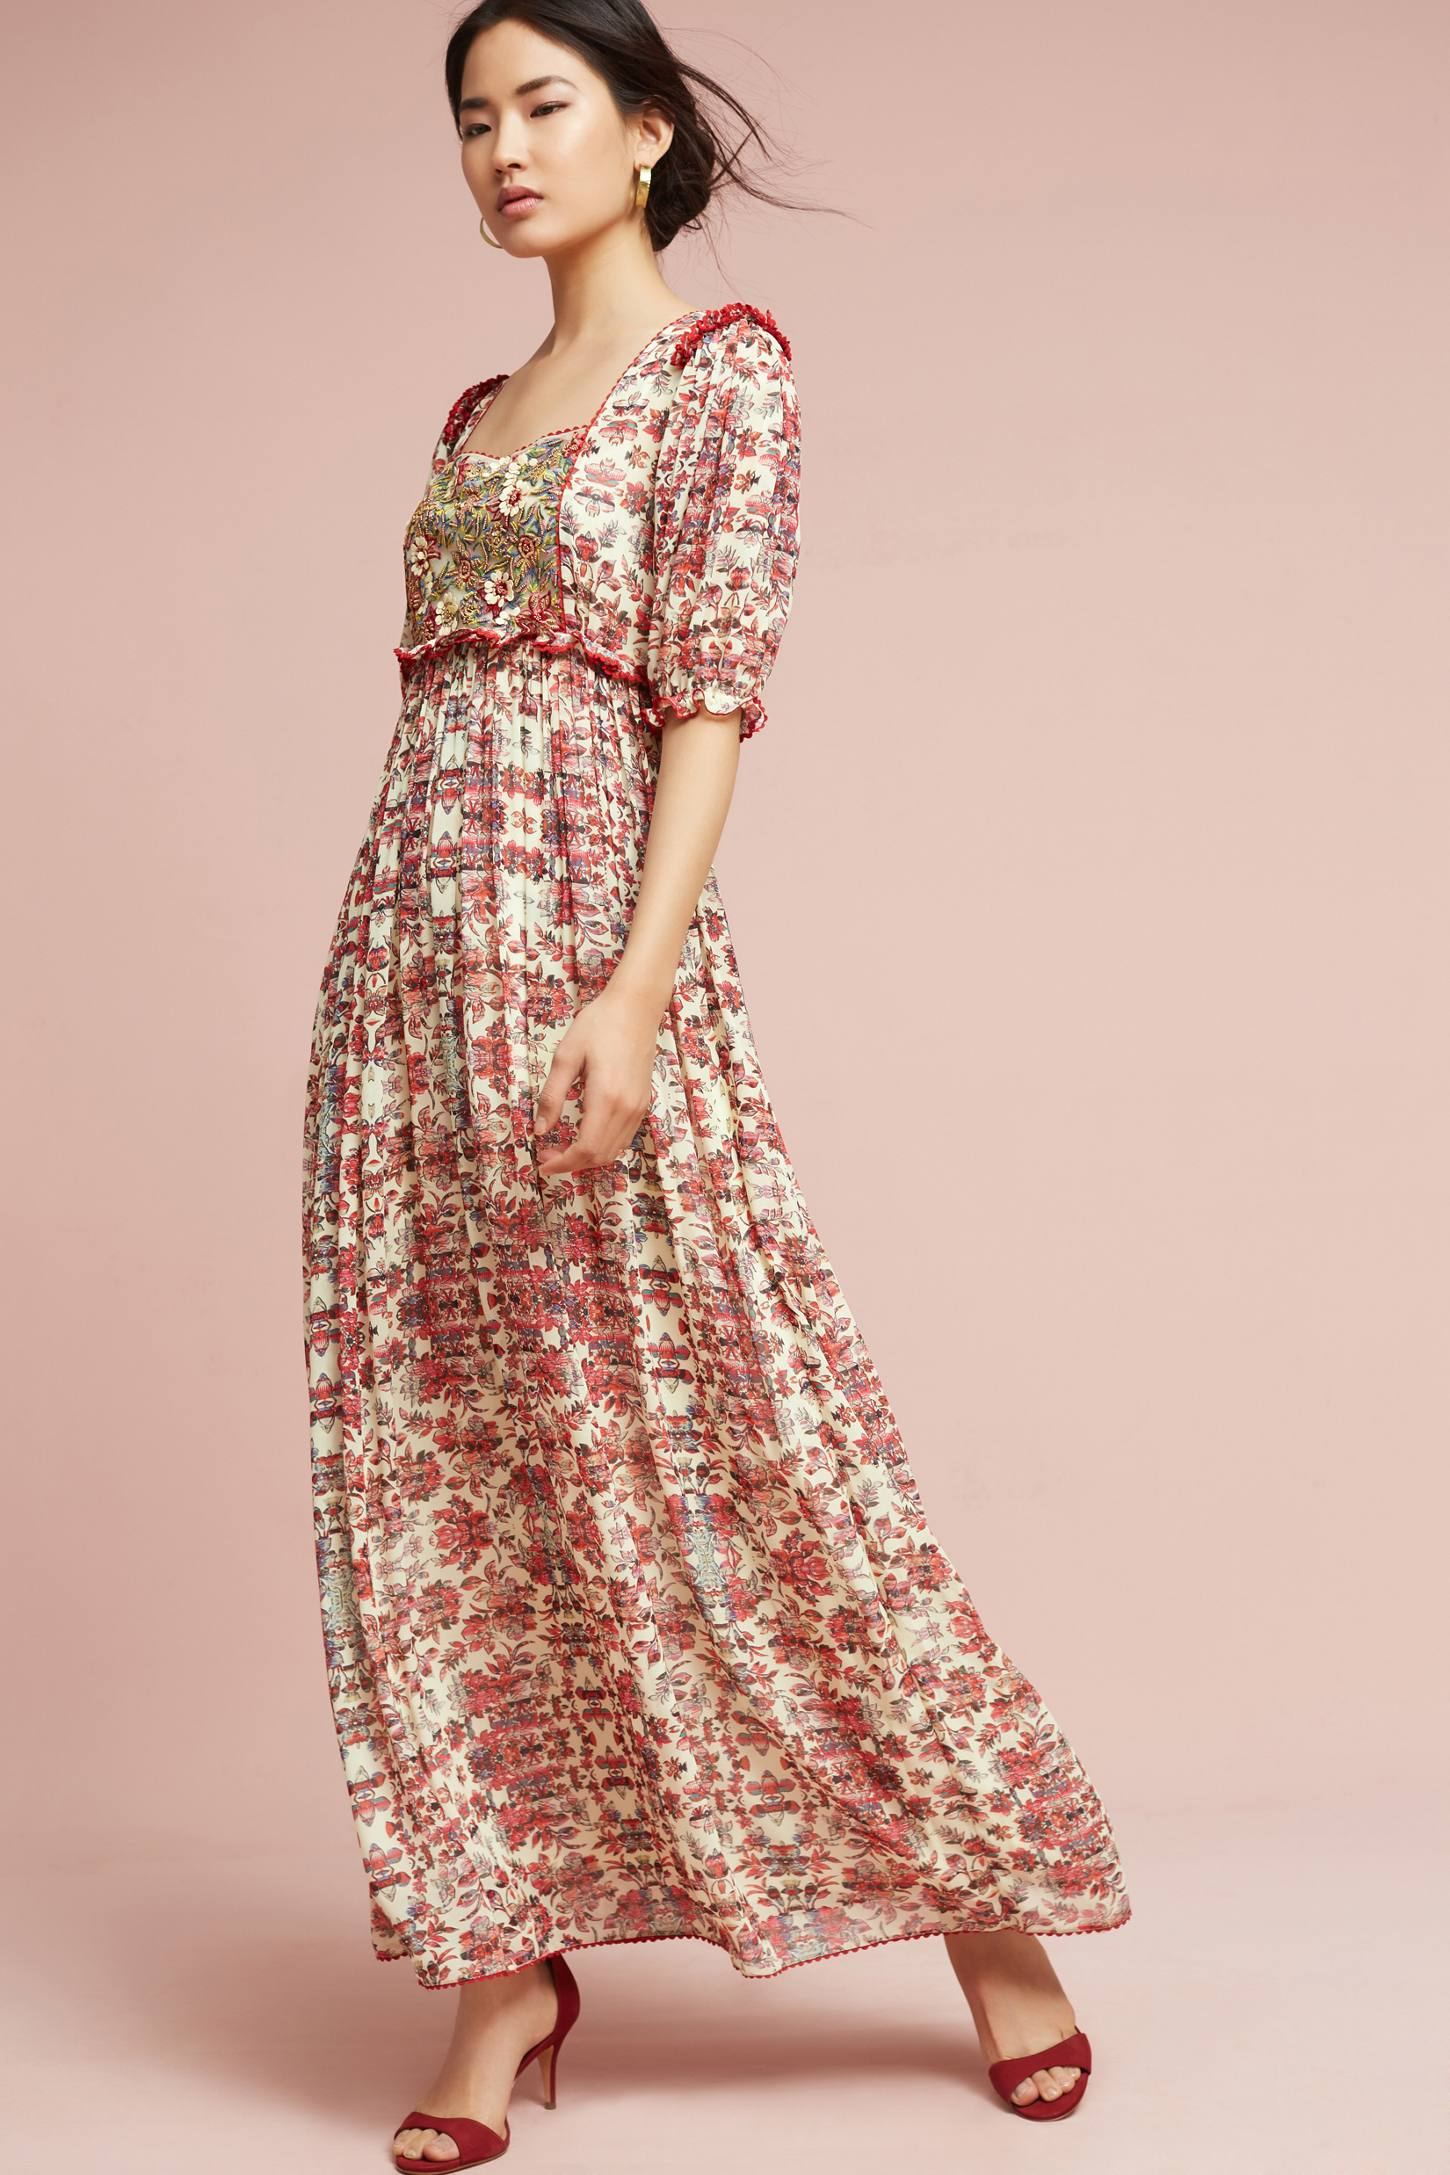 Slide View: 1: Robe longue Sidella, rose